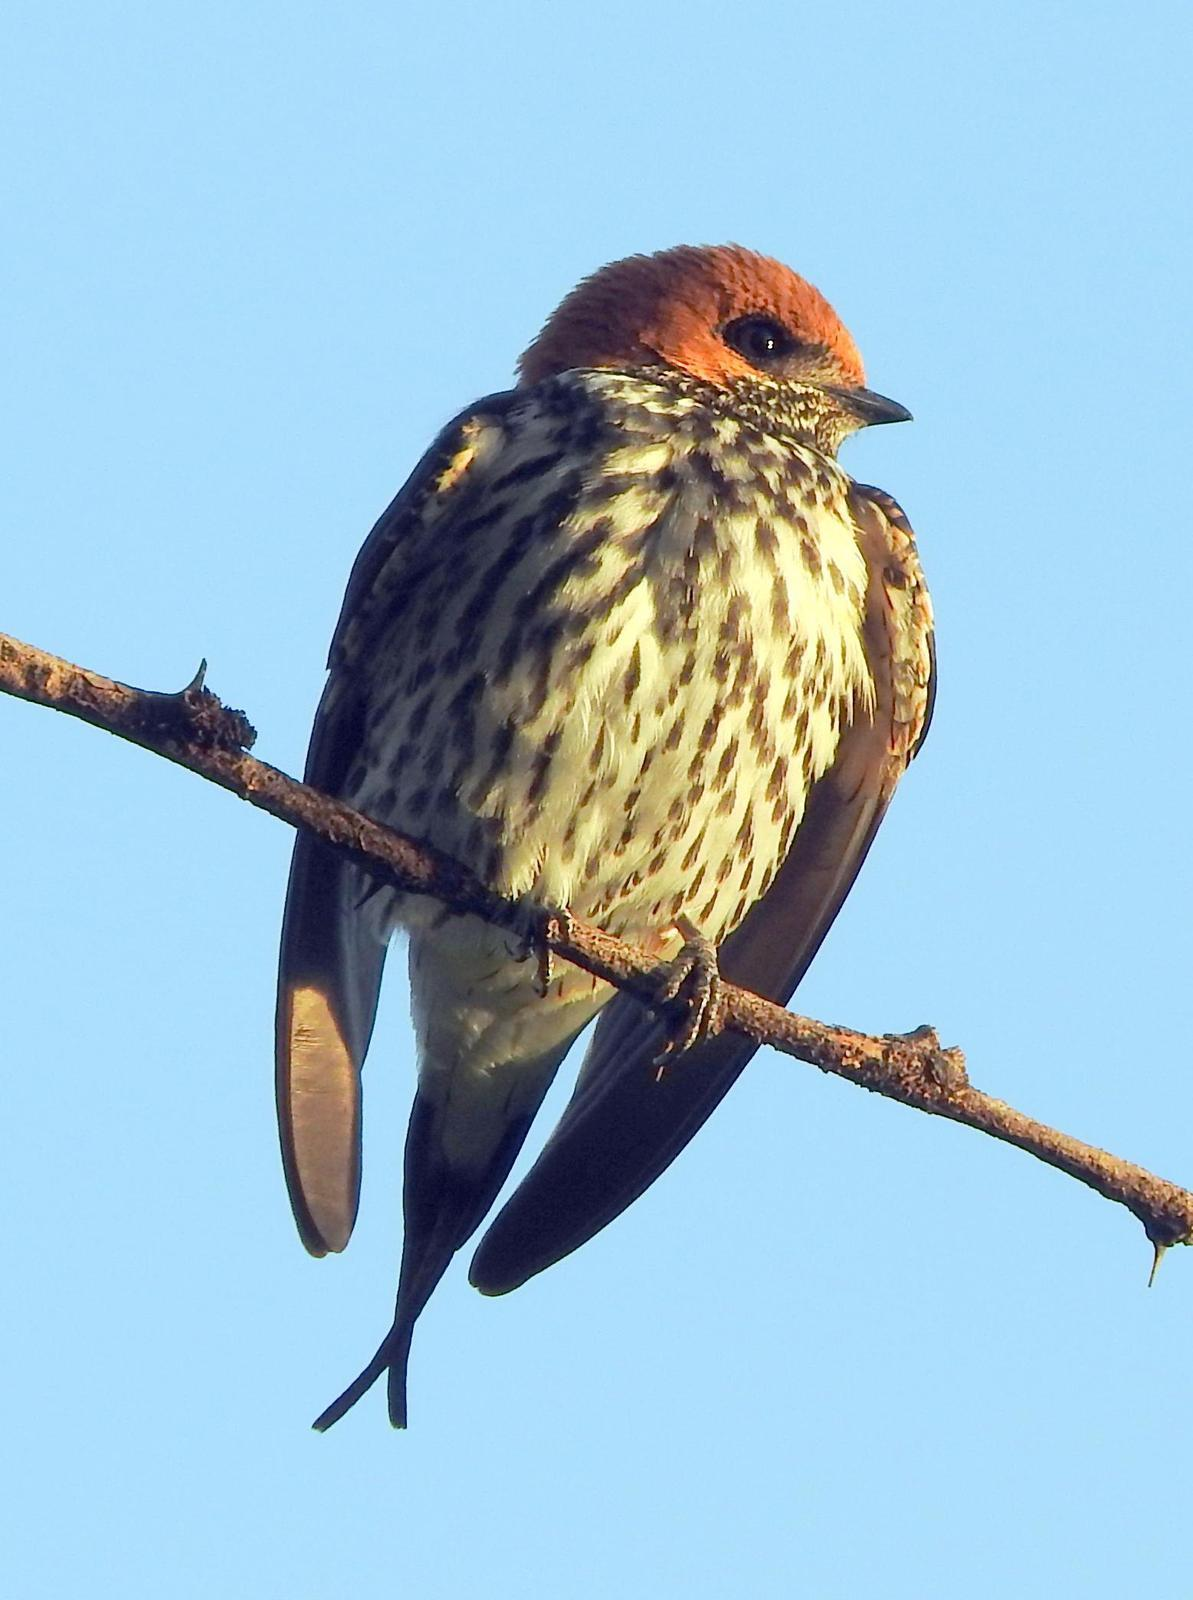 Lesser Striped Swallow Photo by Todd A. Watkins